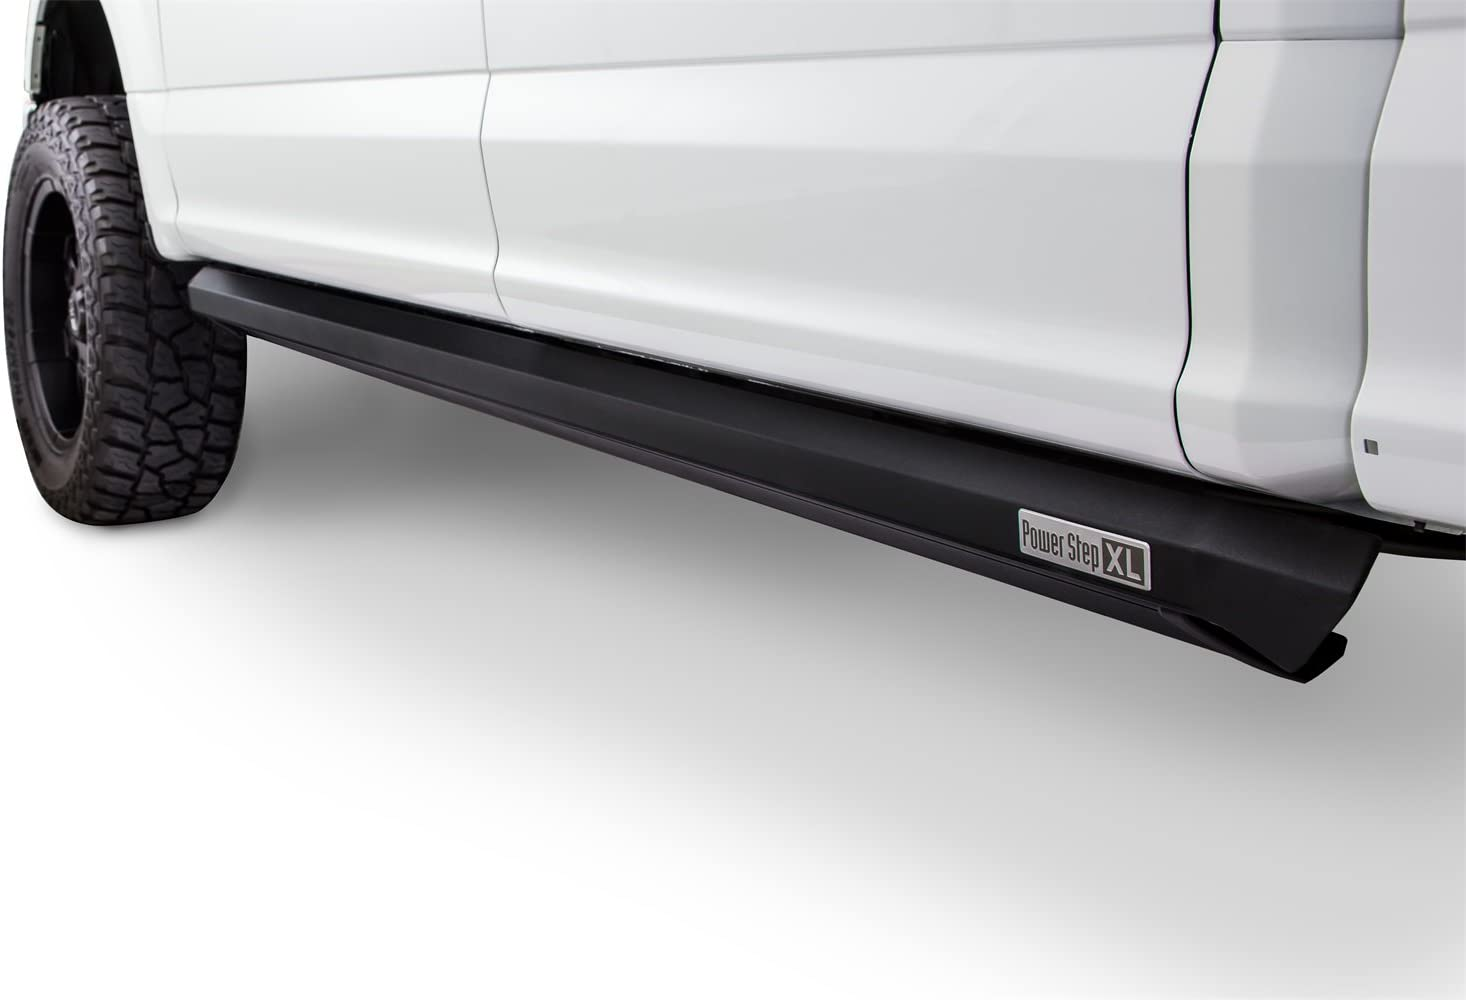 AMP Research 77151-01A Power Step XL Electric Running Boards Plug N Play System for 2015-2018 Ford F-150 Super Crew